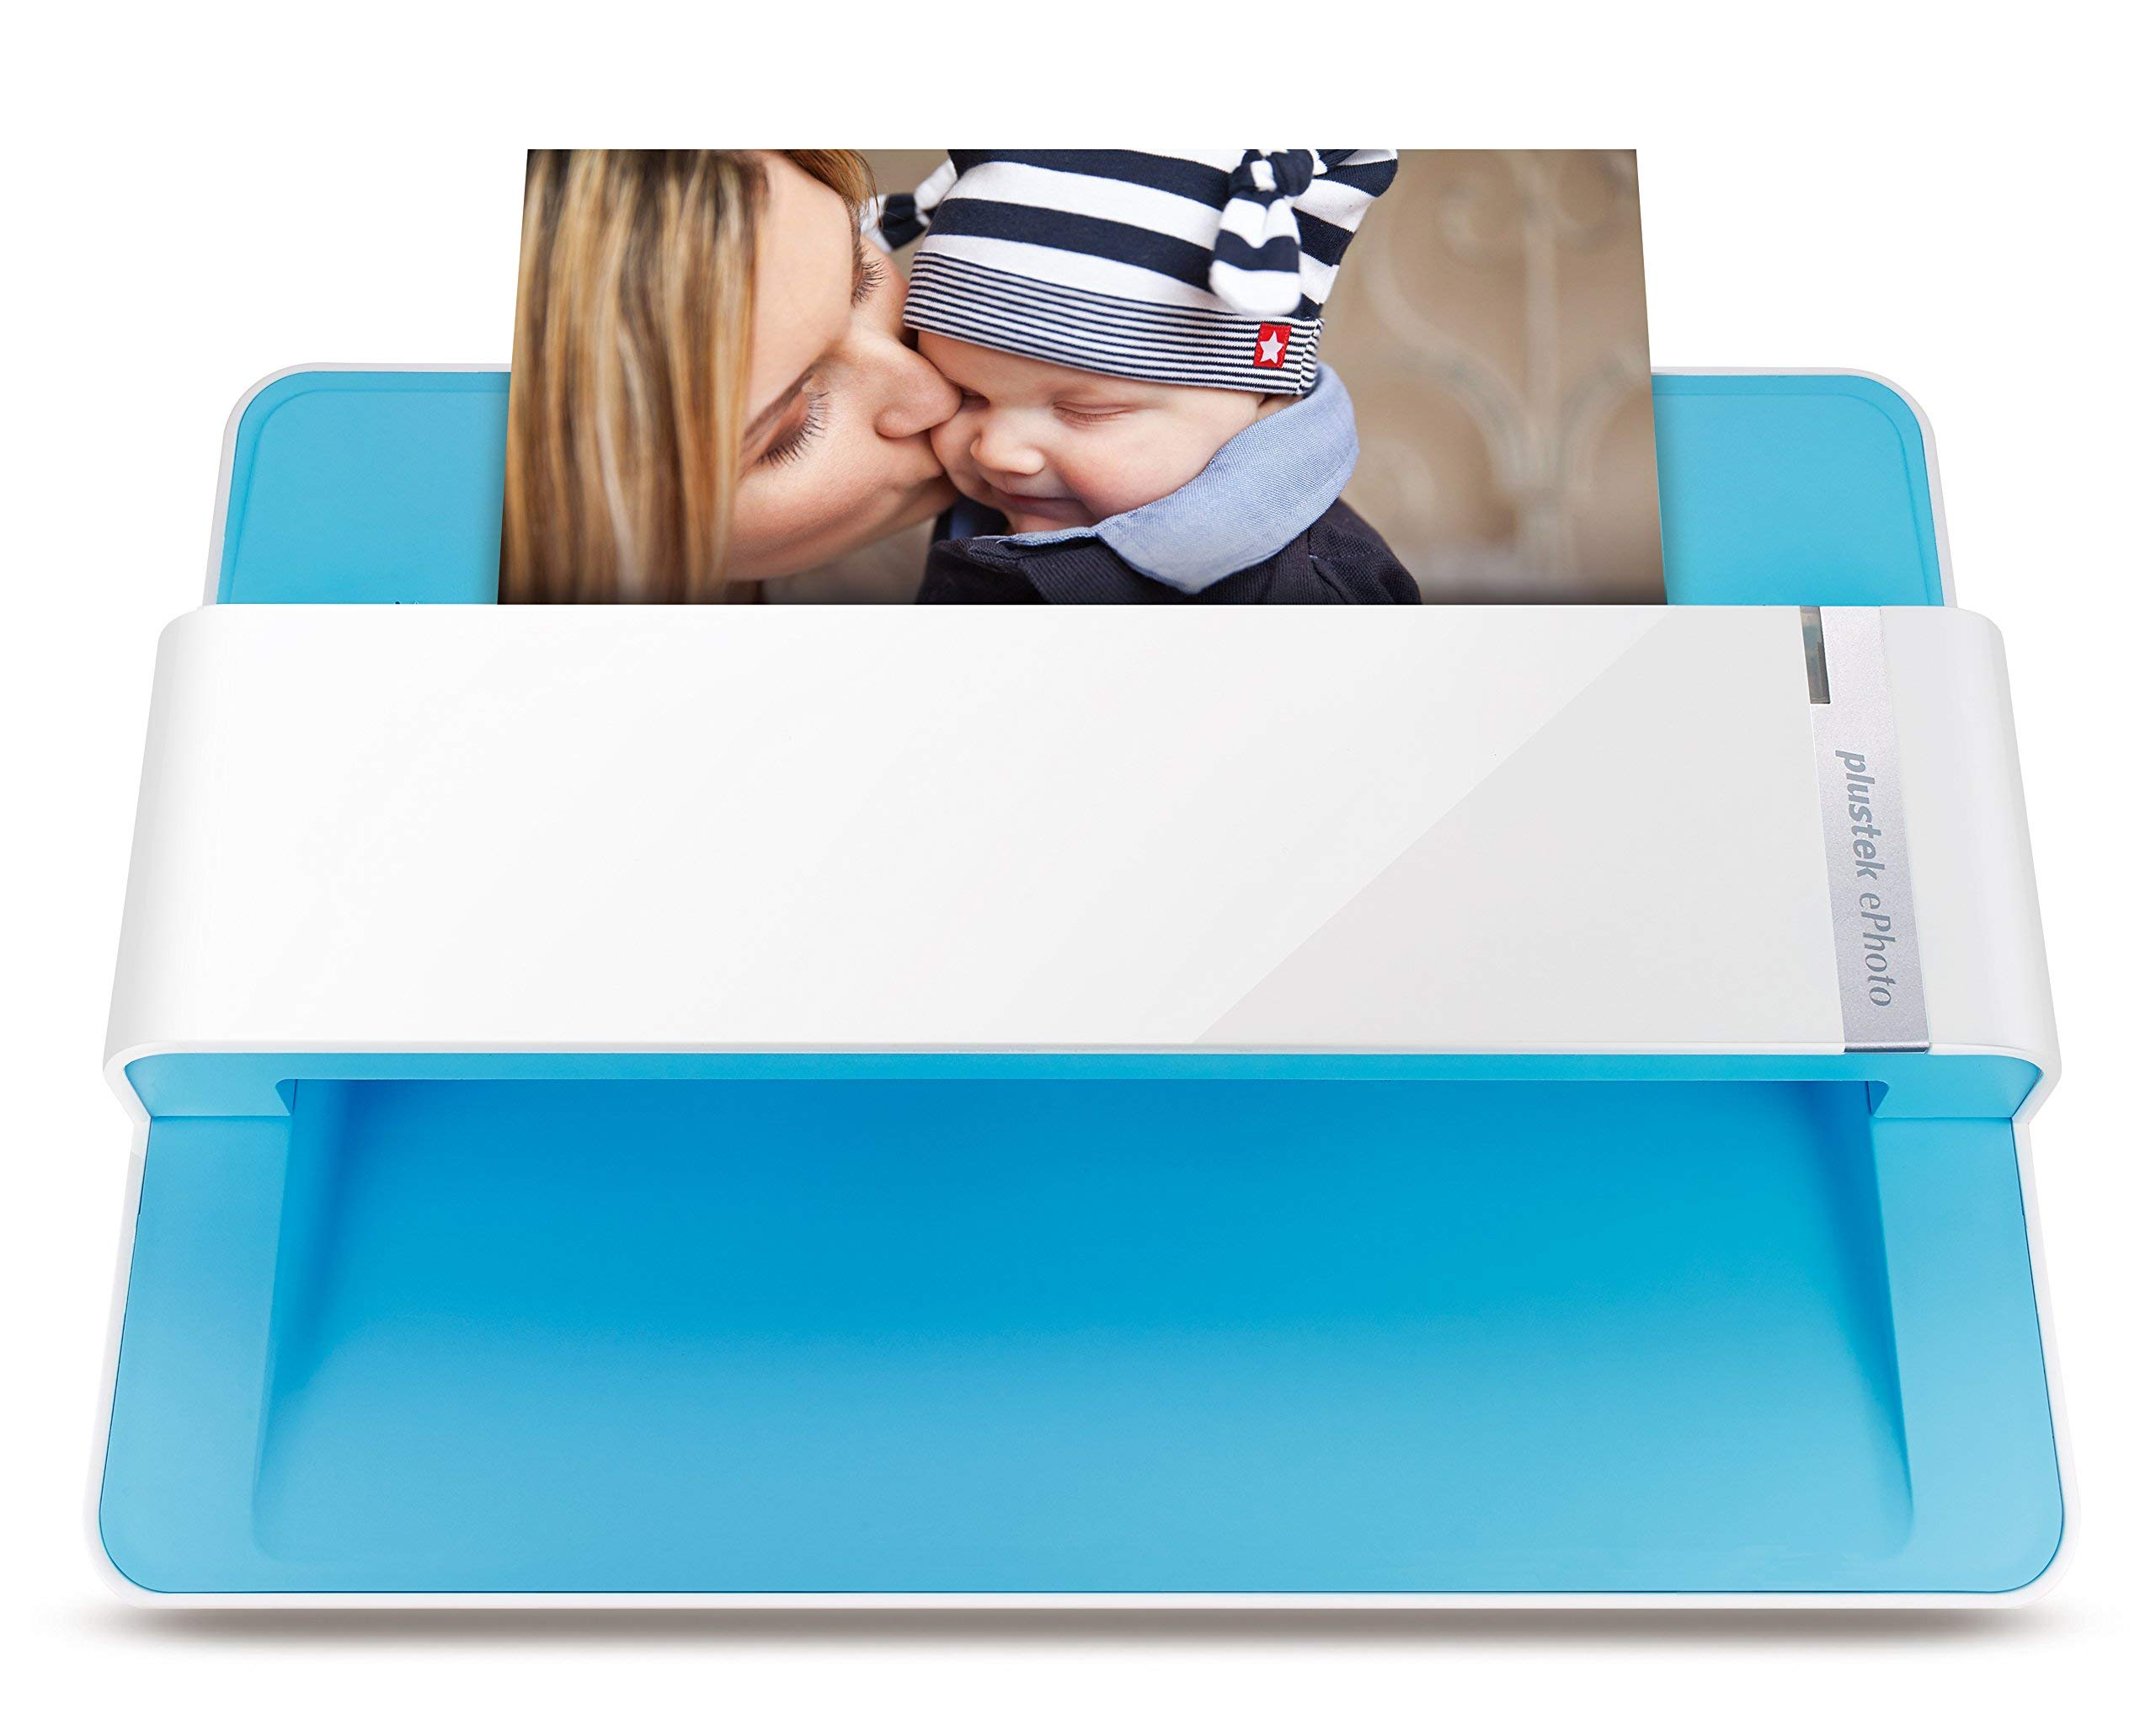 Plustek Photo Scanner - ephoto Z300, Scan 4x6 Photo in 2sec, Auto Crop and Deskew with CCD Sensor. Support Mac and PC (Renewed)